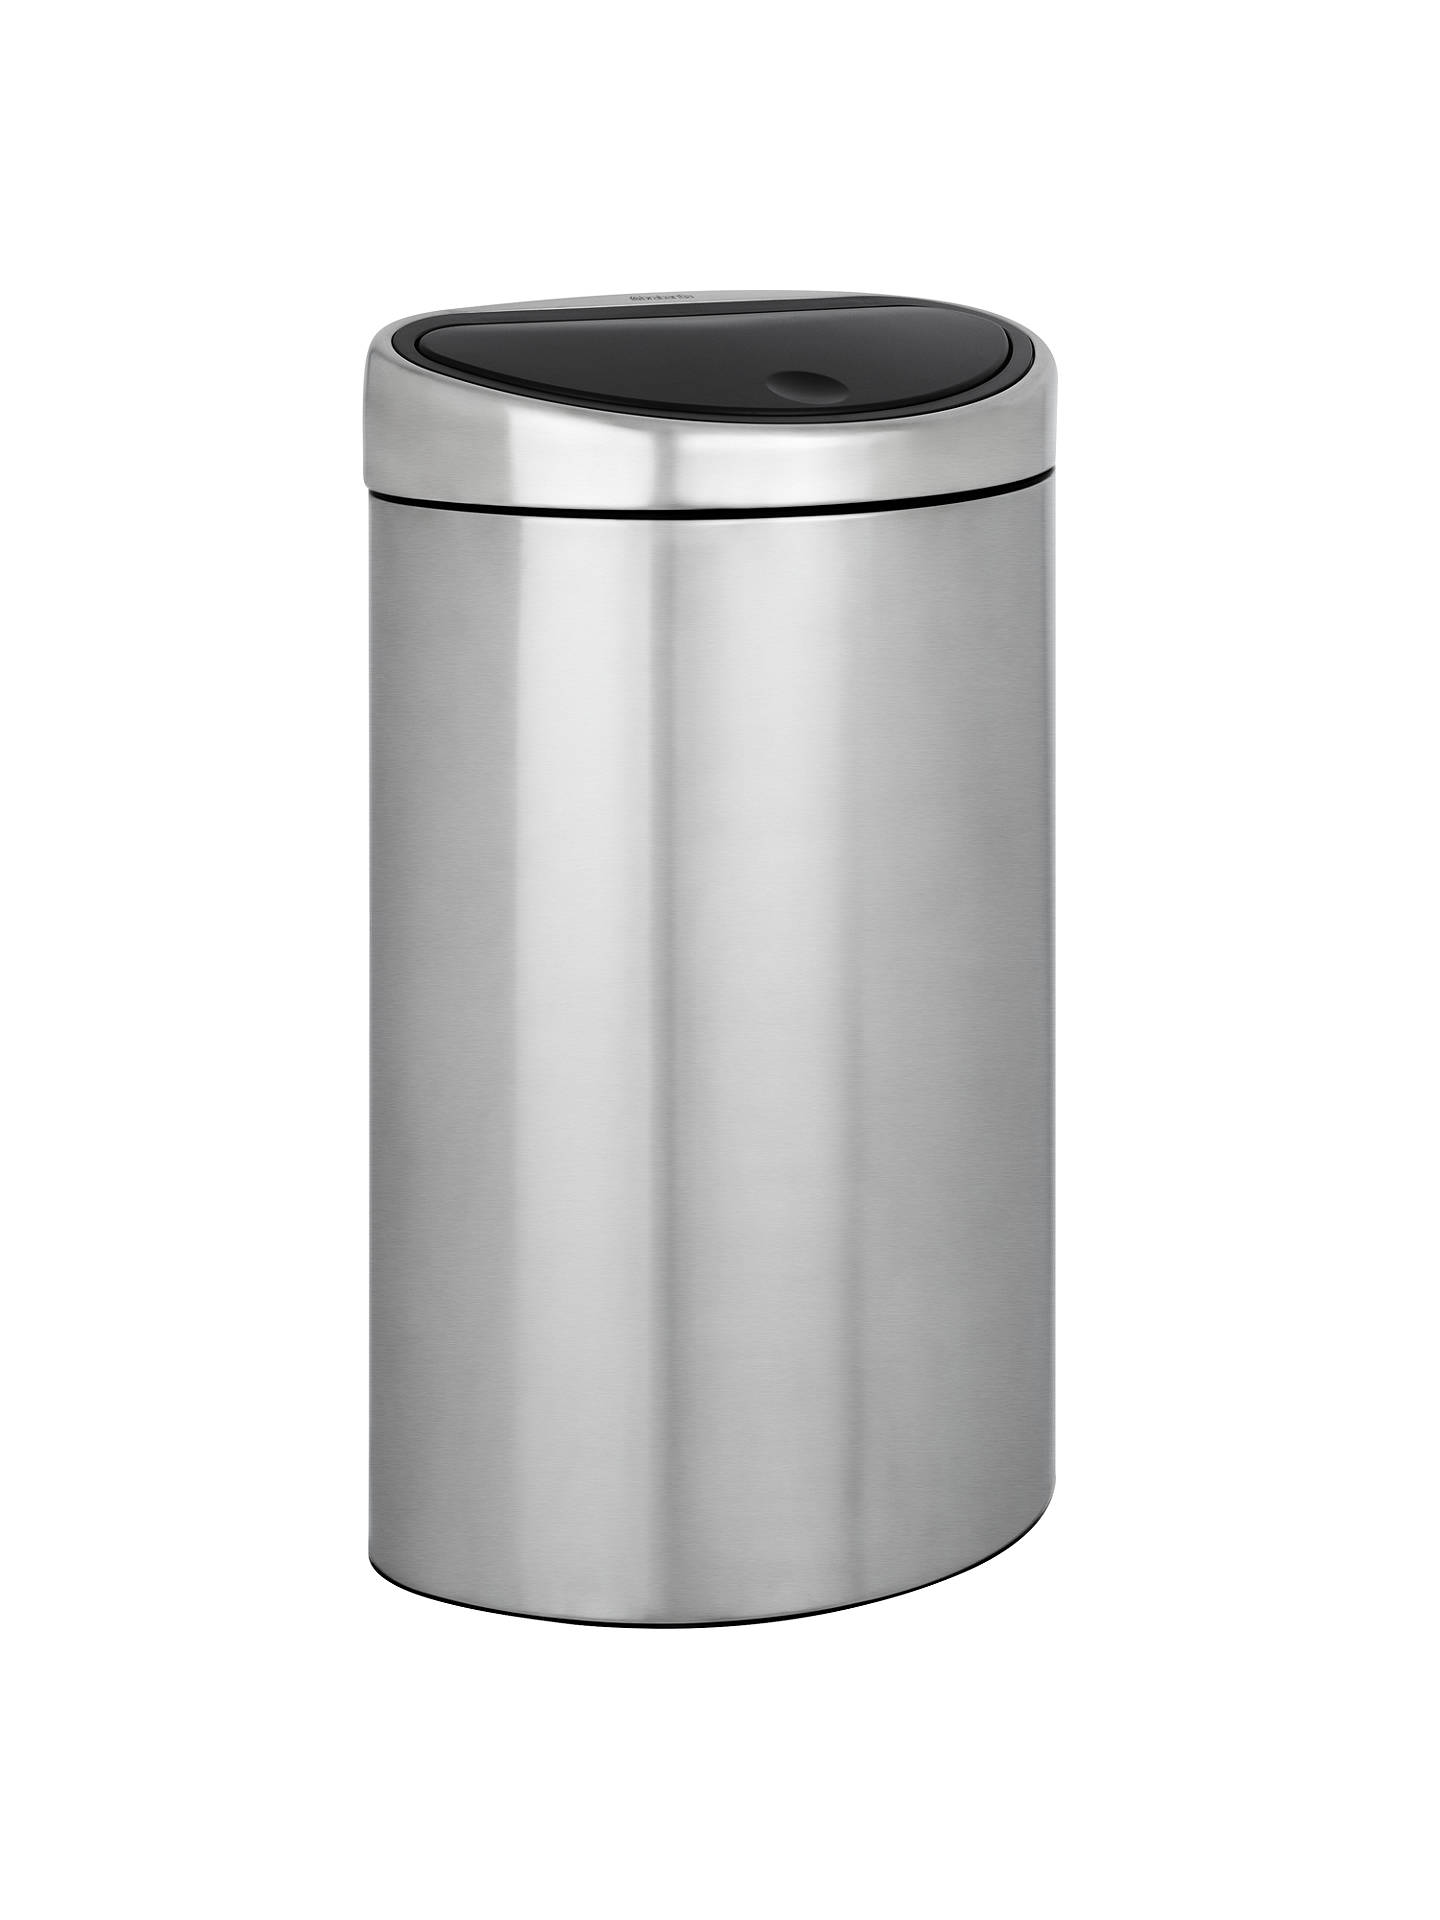 brabantia touch bin matt steel 40l at john lewis partners. Black Bedroom Furniture Sets. Home Design Ideas